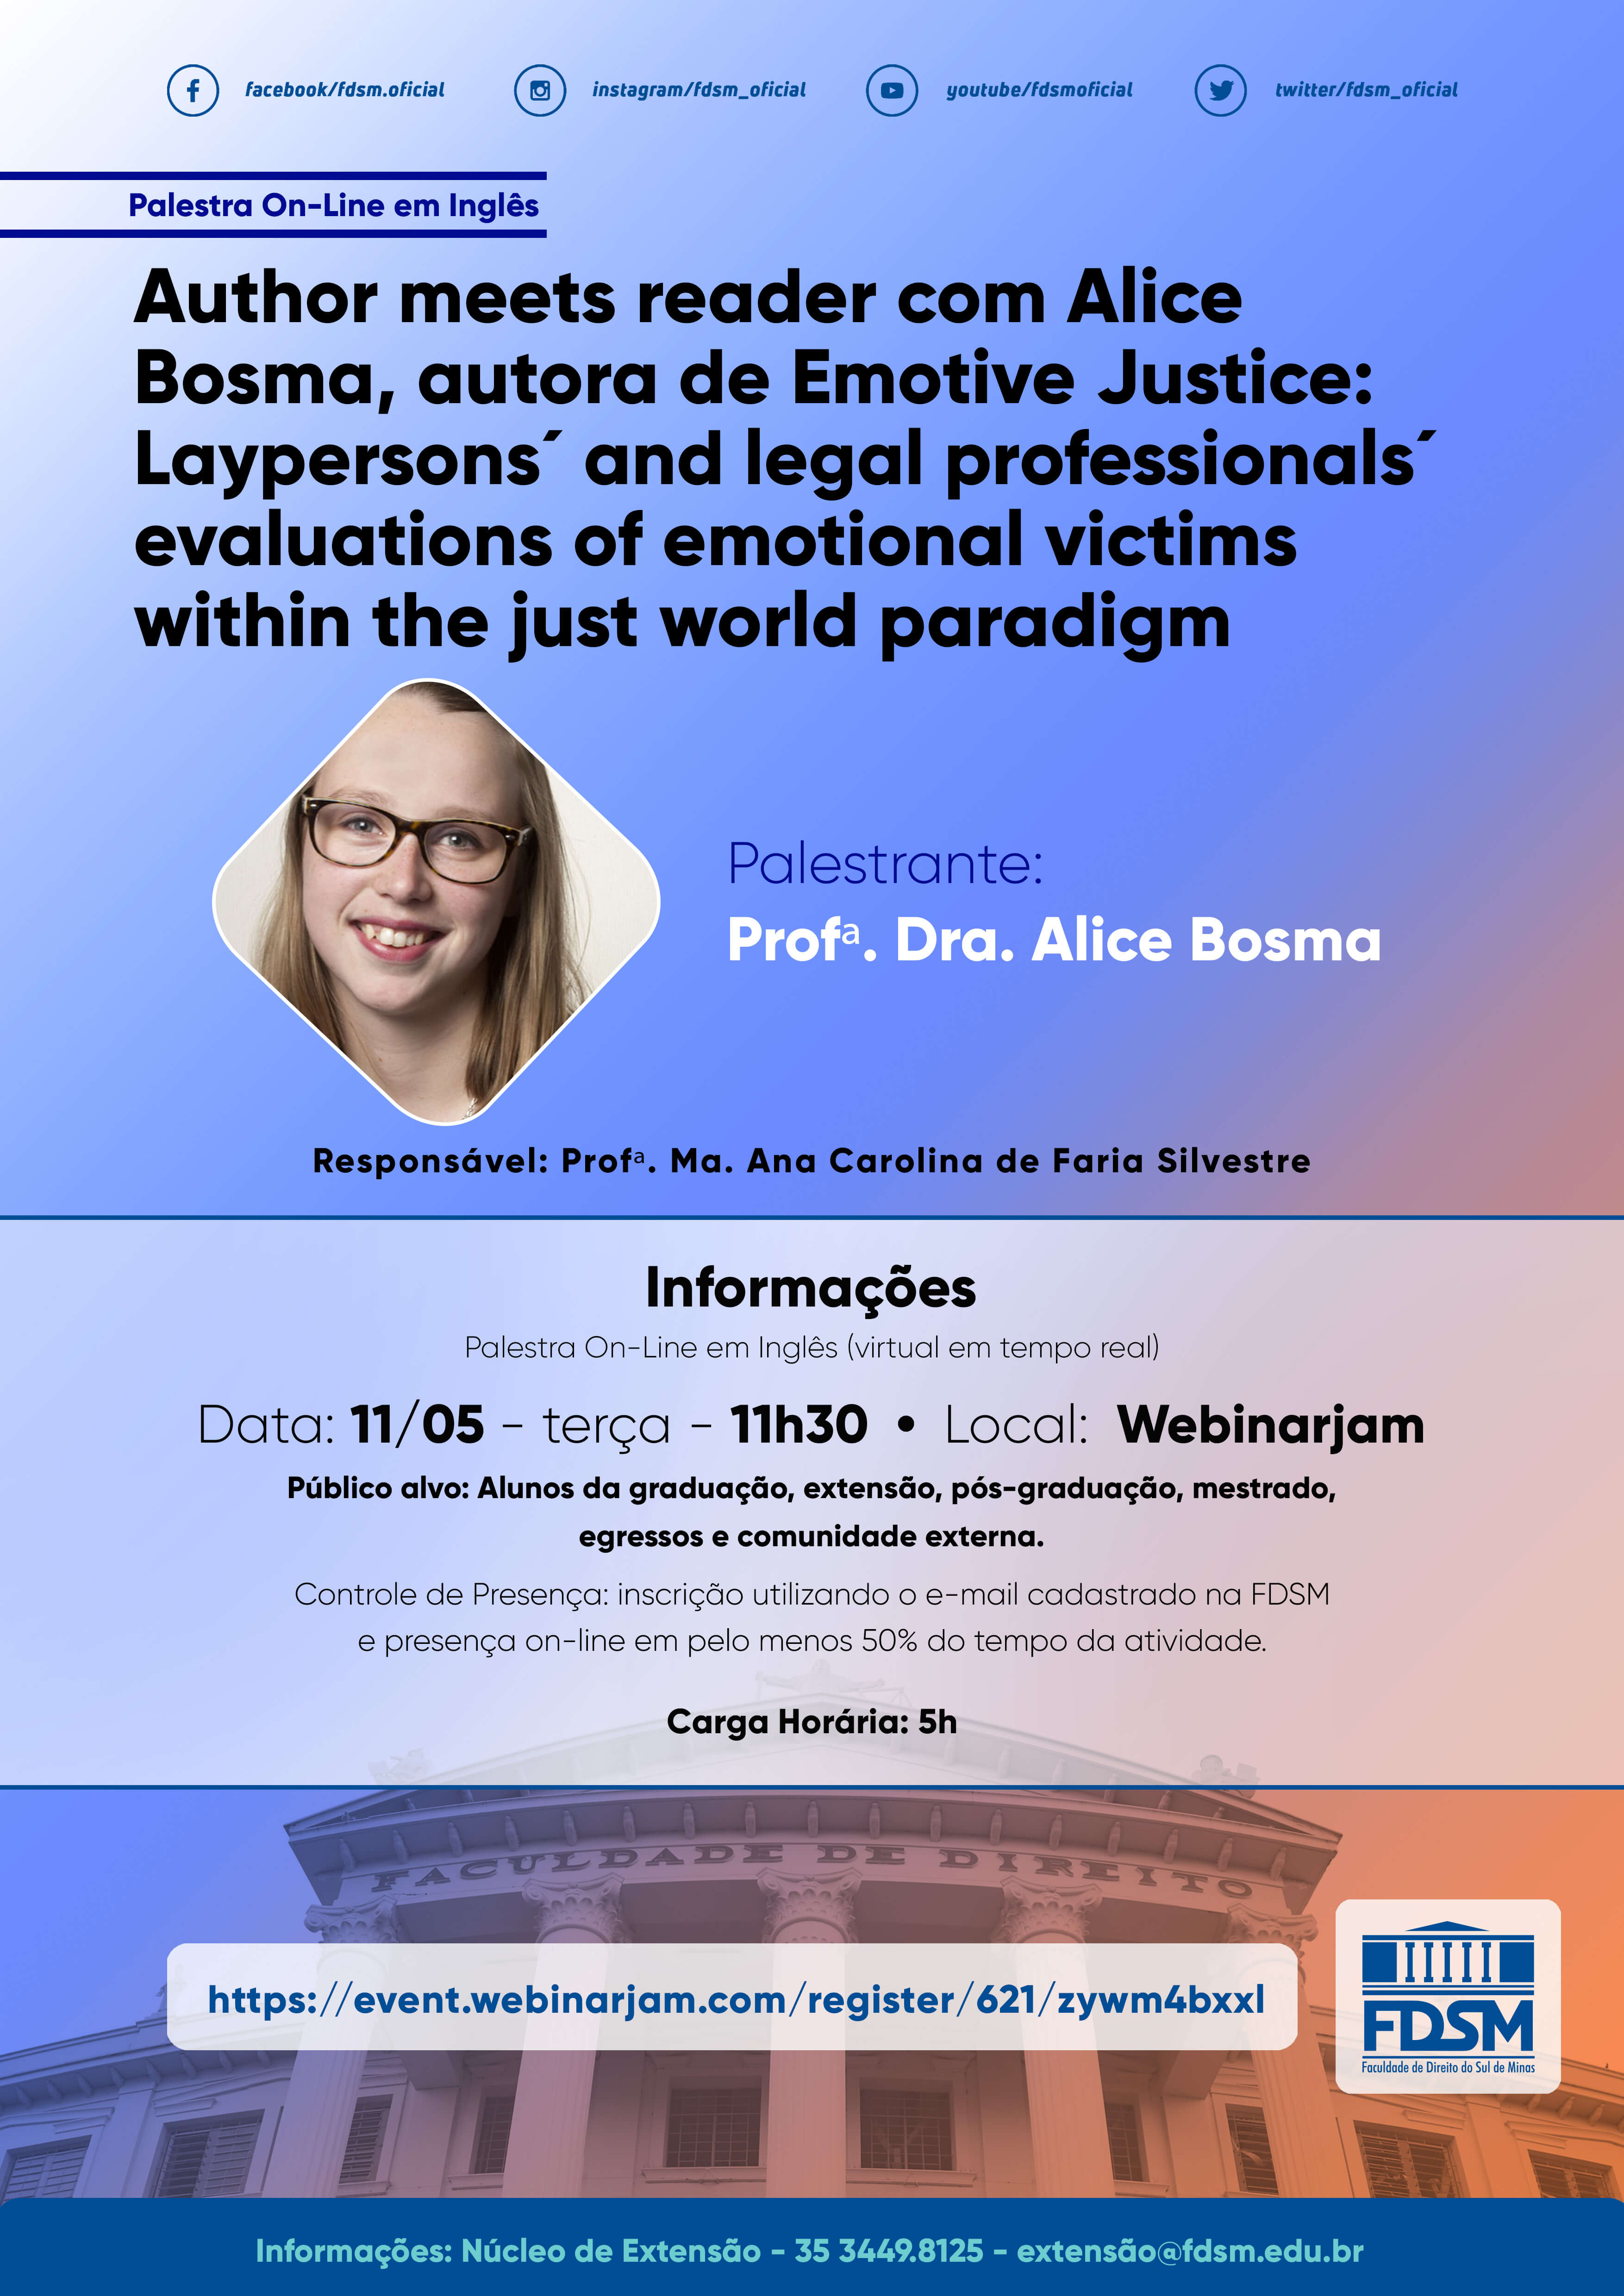 Evento 755 - PALESTRA 'AUTHOR MEETS READER COM ALICE BOSMA, AUTORA DE EMOTIVE JUSTICE: LAYPERSONS´ AND LEGAL PROFESSIONALS´EVALUATIONS OF EMOTIONAL VICTIMS WITHIN THE JUST WORLD PARADIGM'.